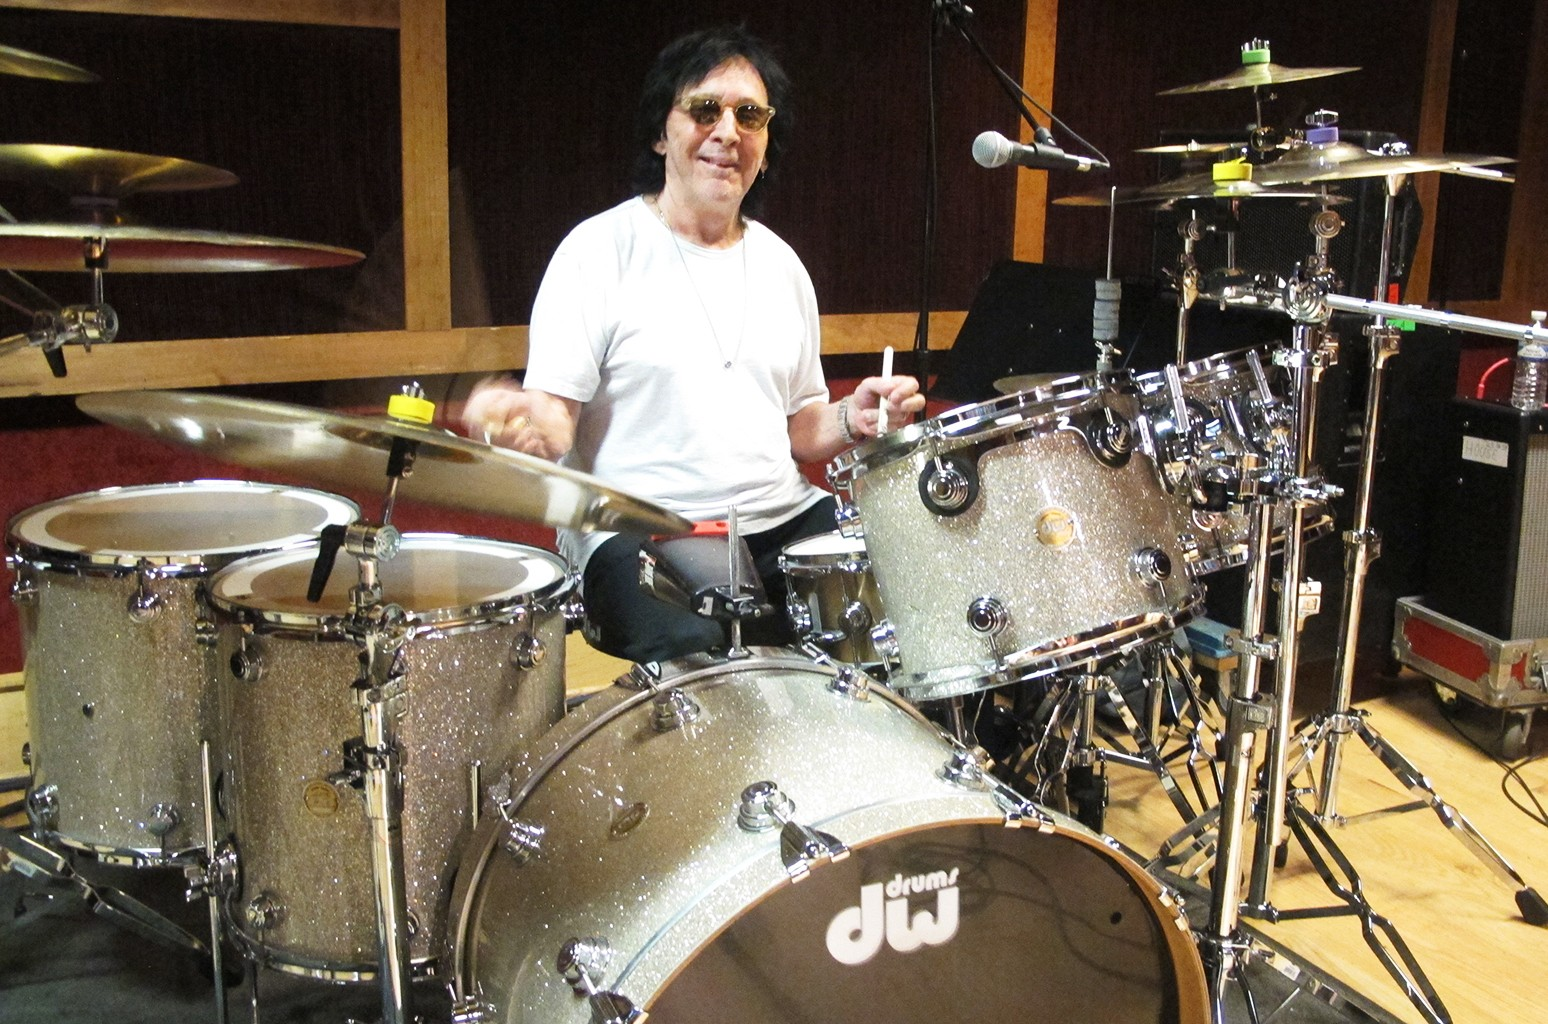 Peter Criss rehearses in a New York City studio on June 15, 2017, in preparation for his final U.S. performance.